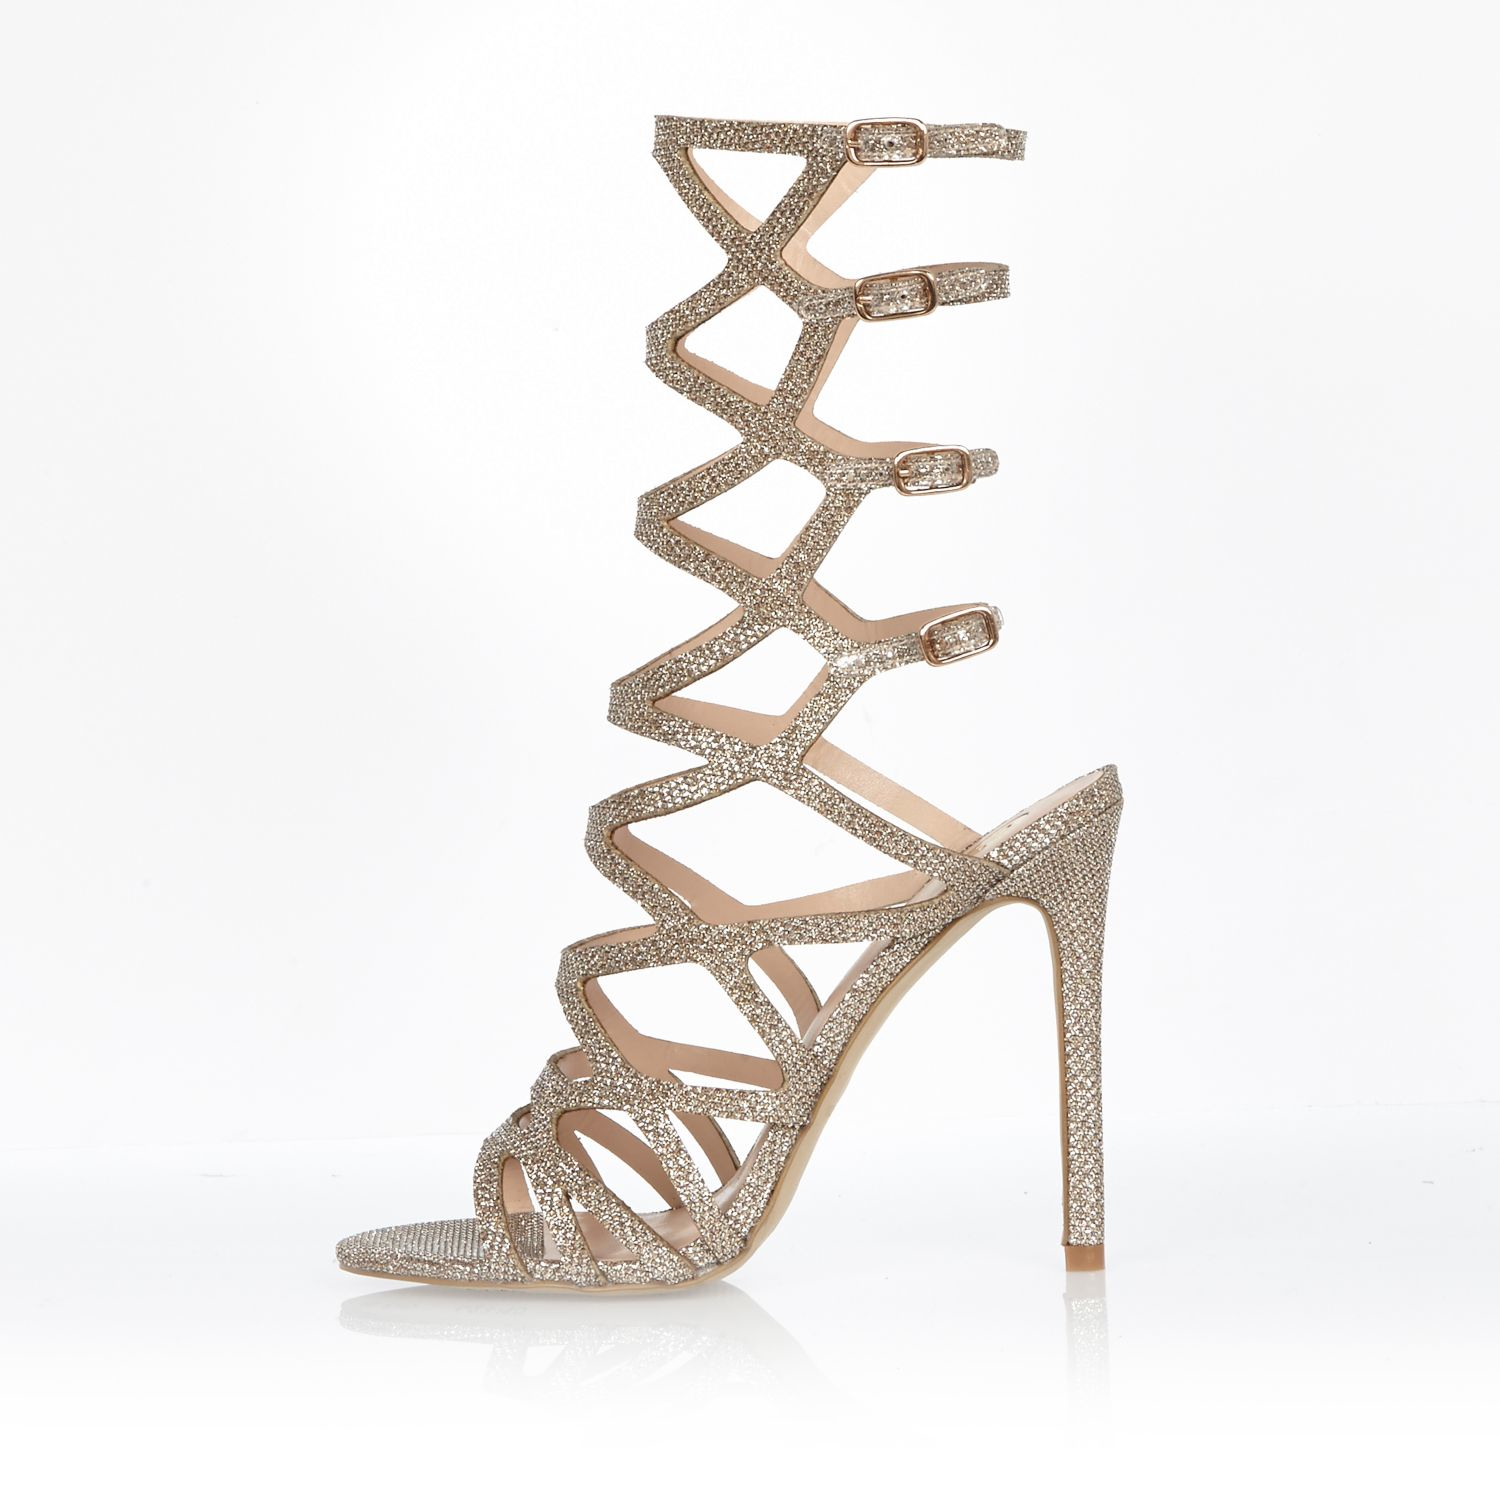 34f389575a13 River Island Metallic Gladiator Heel Sandals in Natural - Lyst